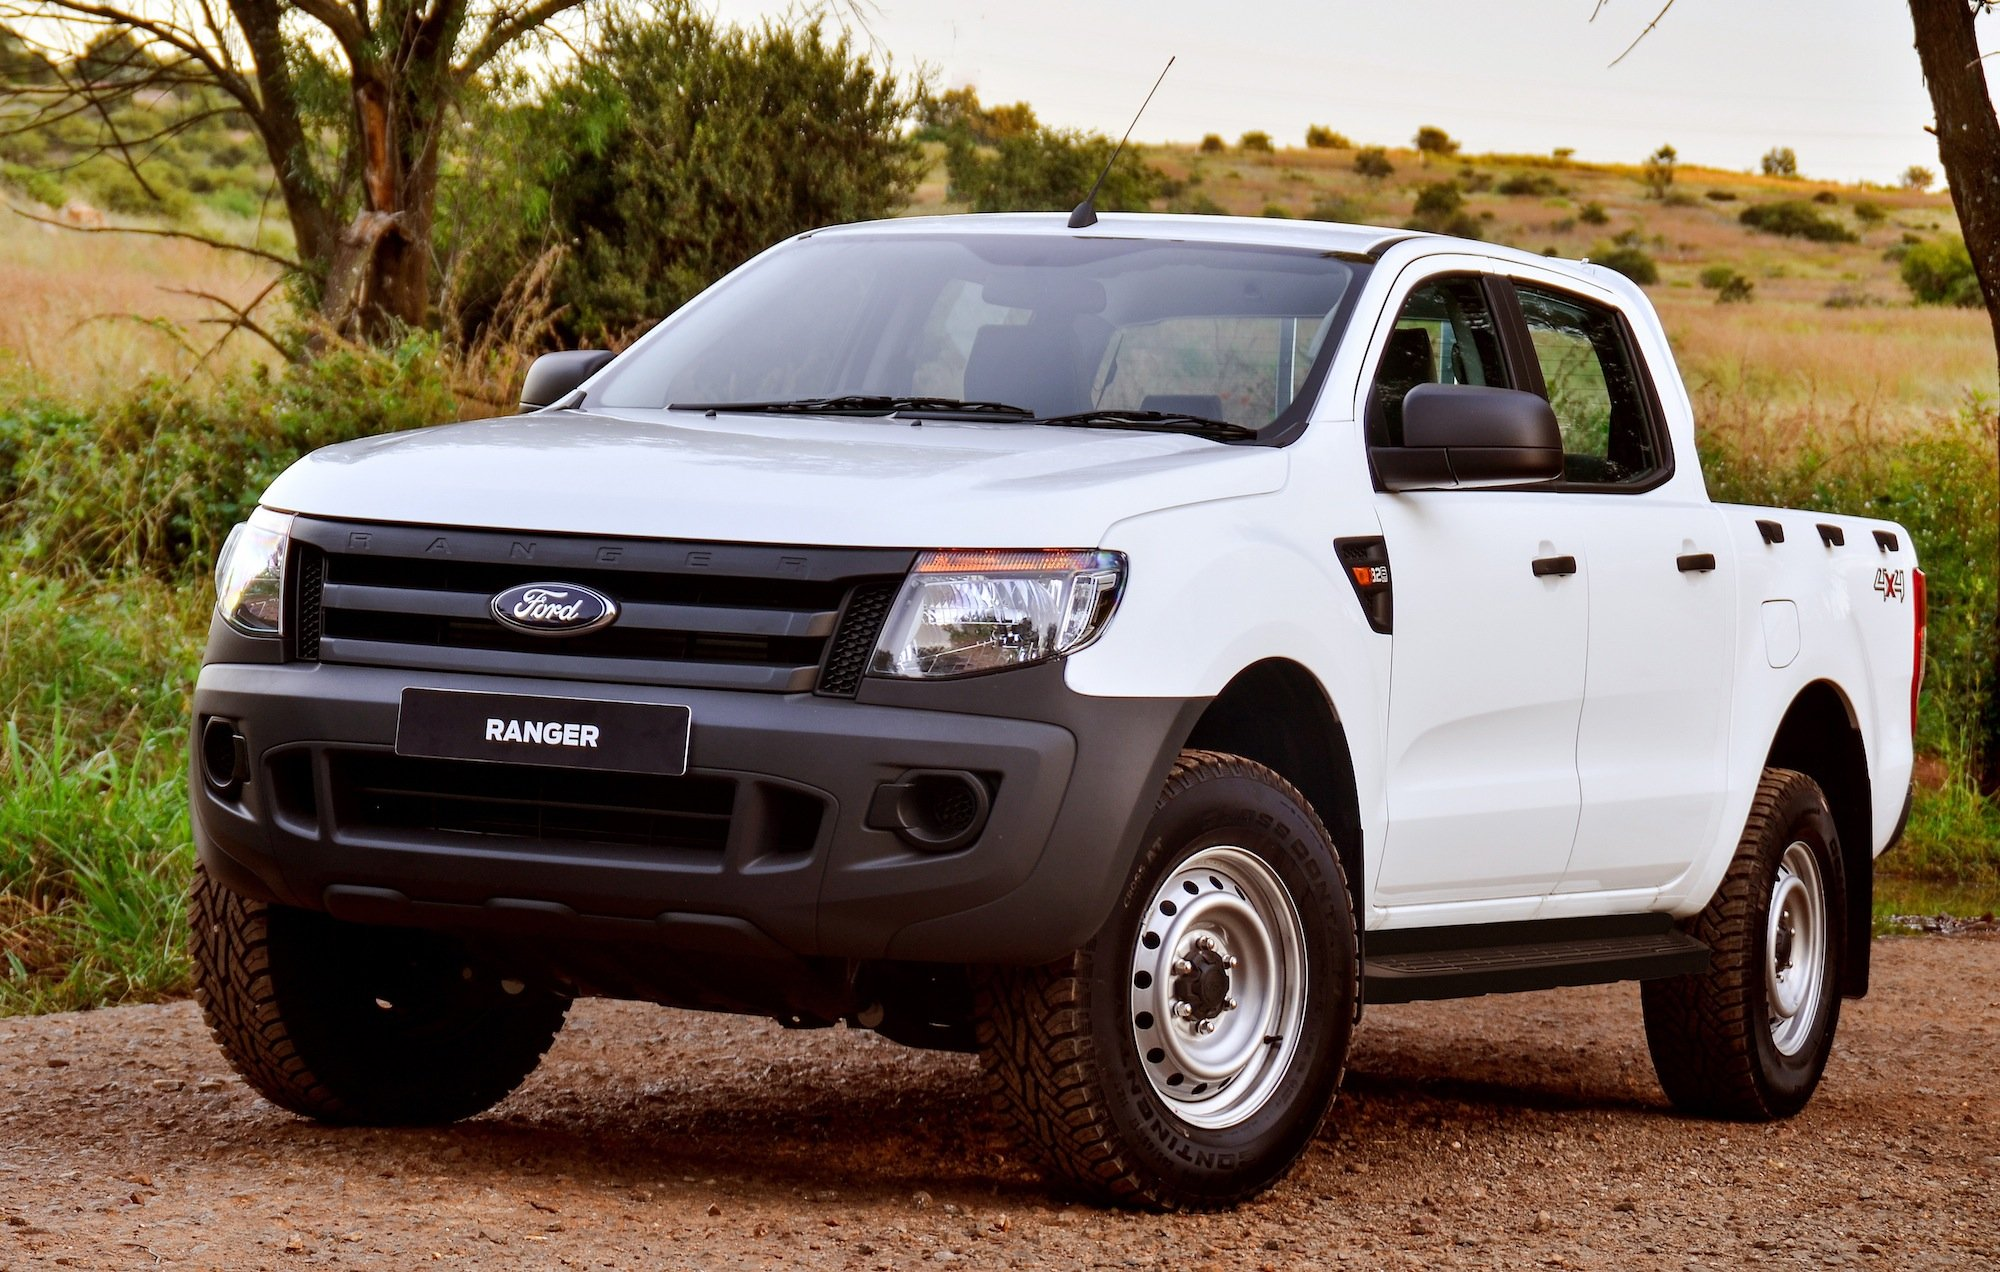 ford ranger 4x4 xl plus expands ute line-up